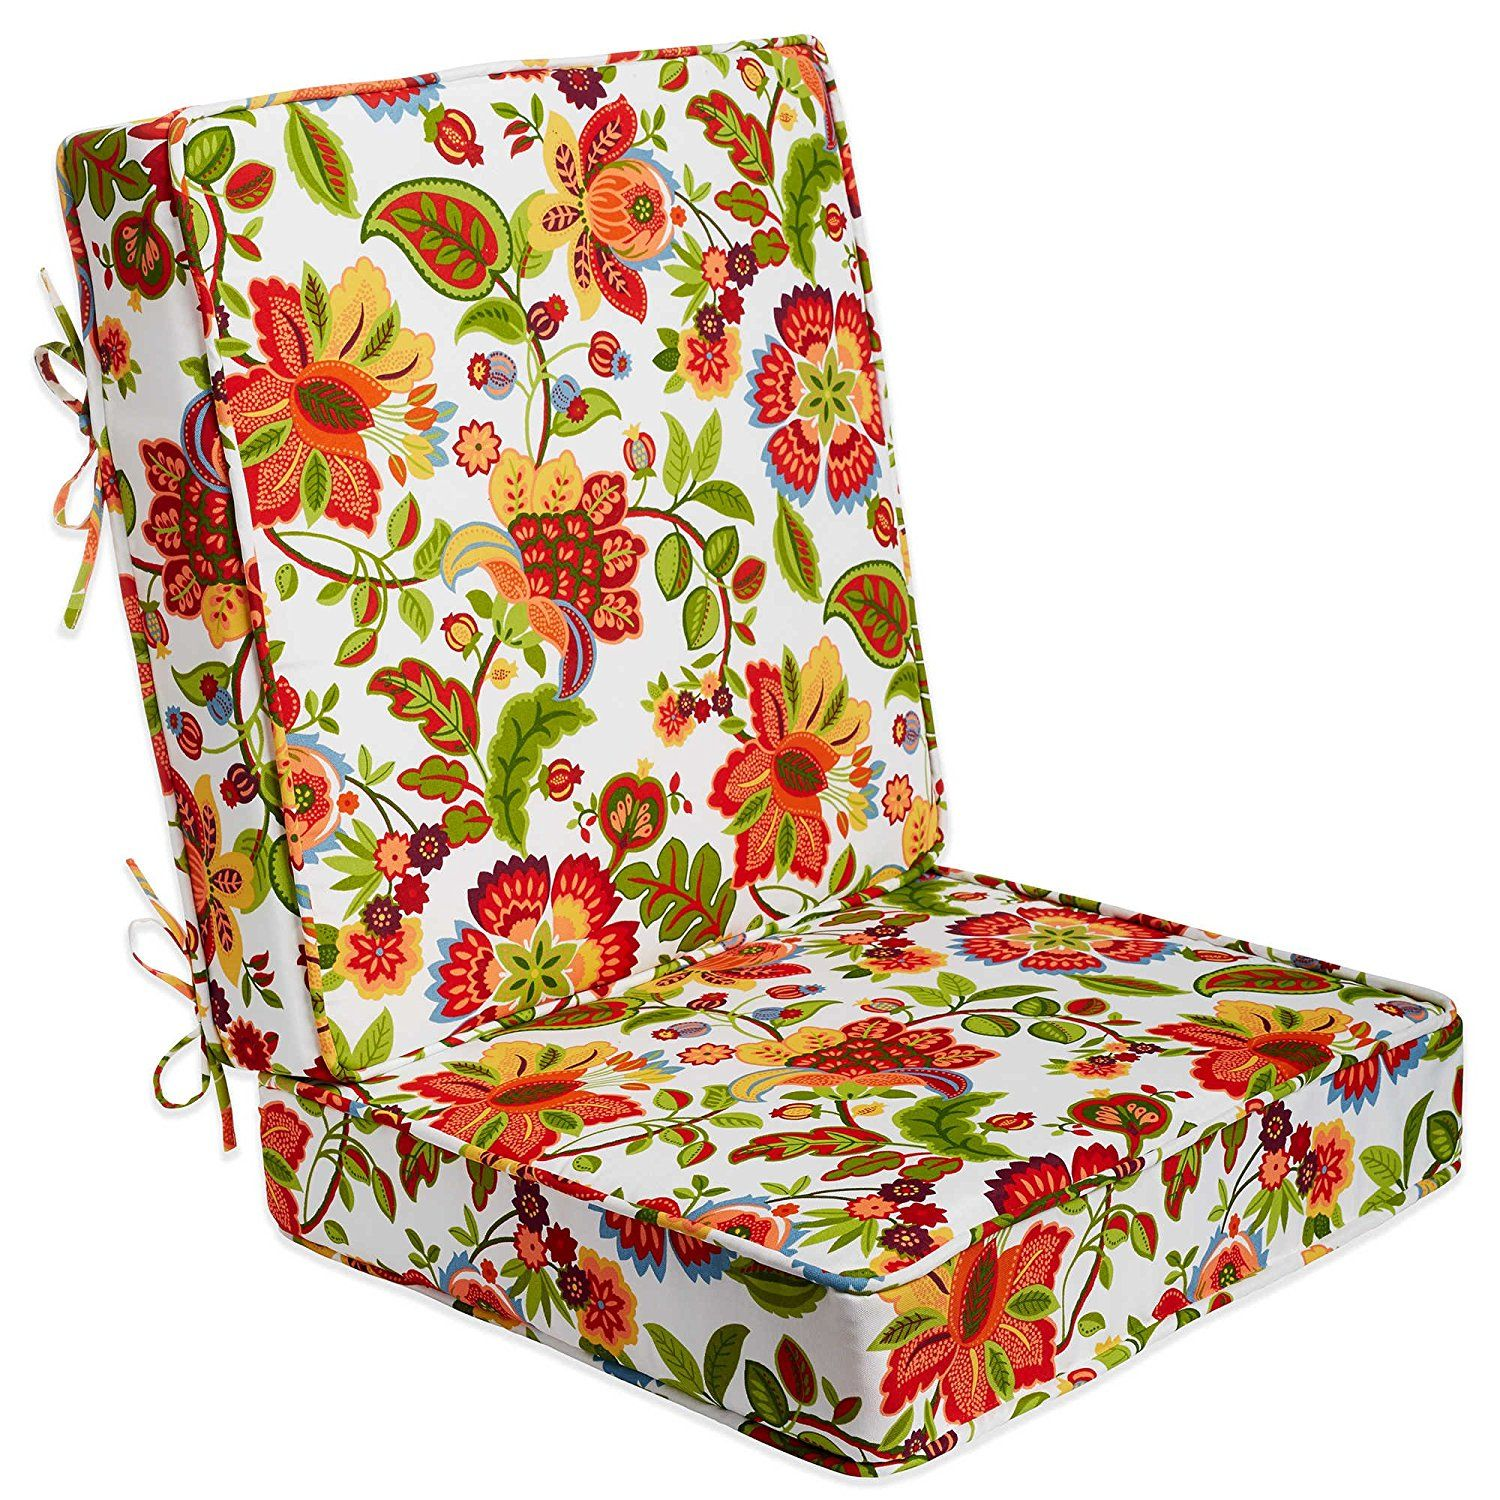 2Piece Vibrant Floral Pattern Outdoor Deep